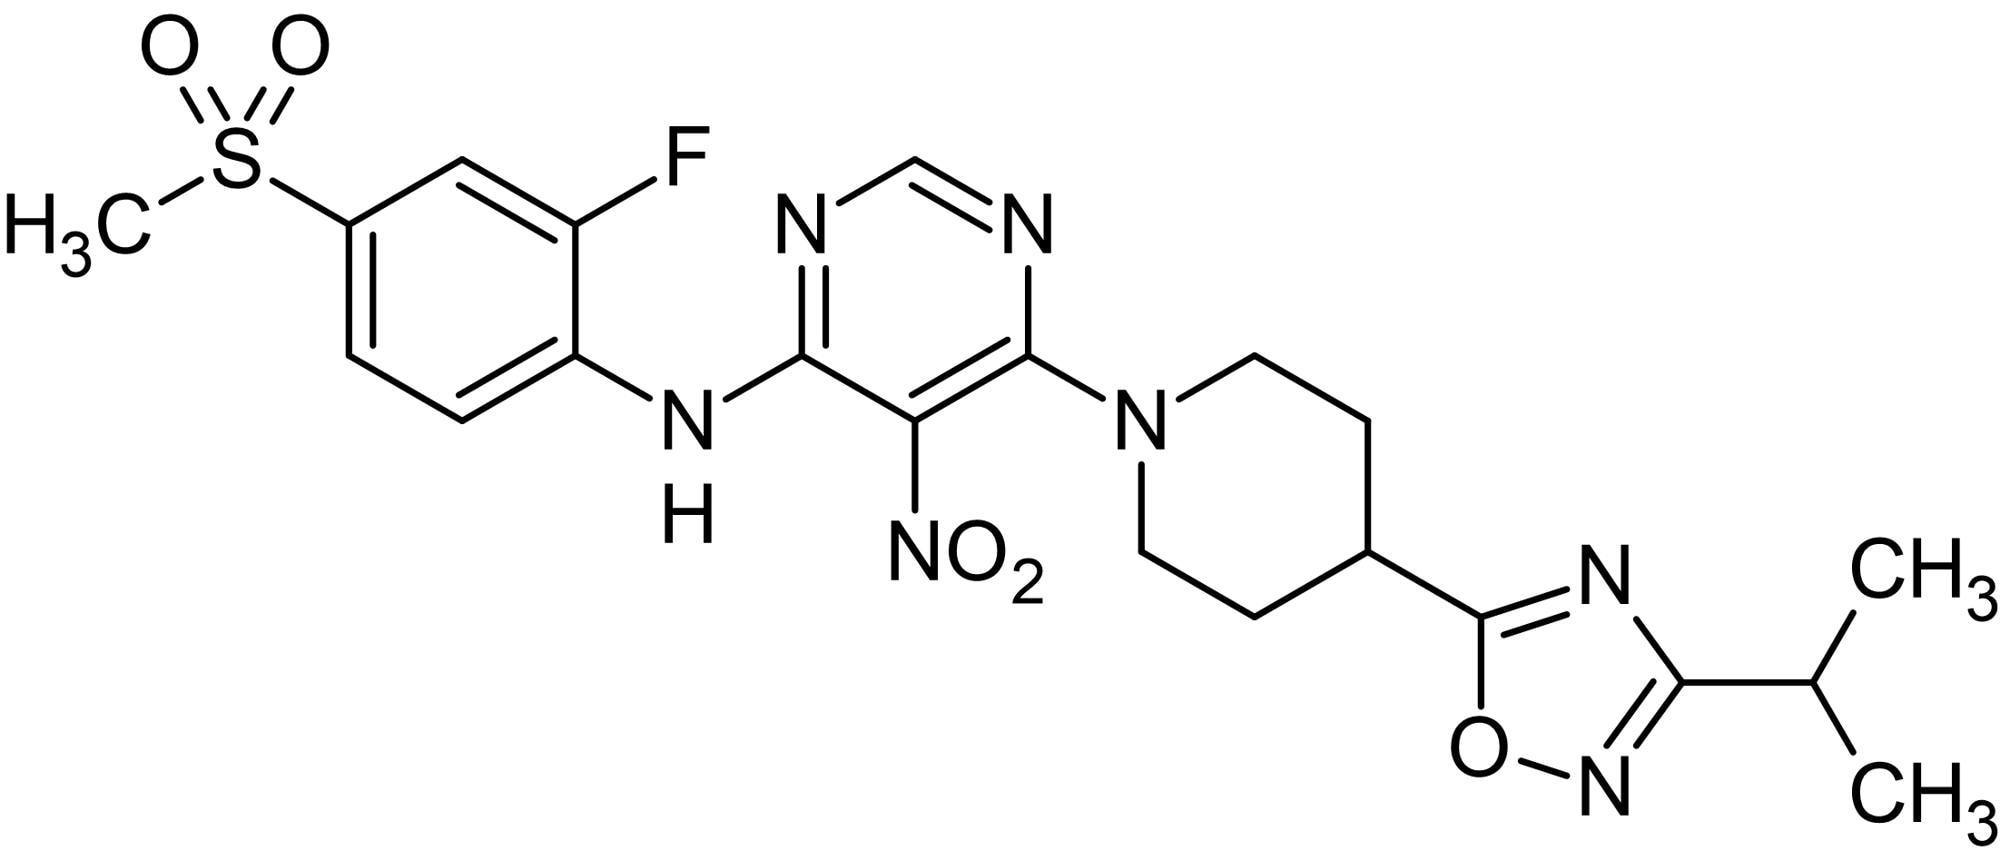 Chemical Structure - AR 231453, GPR119 agonist (ab141627)